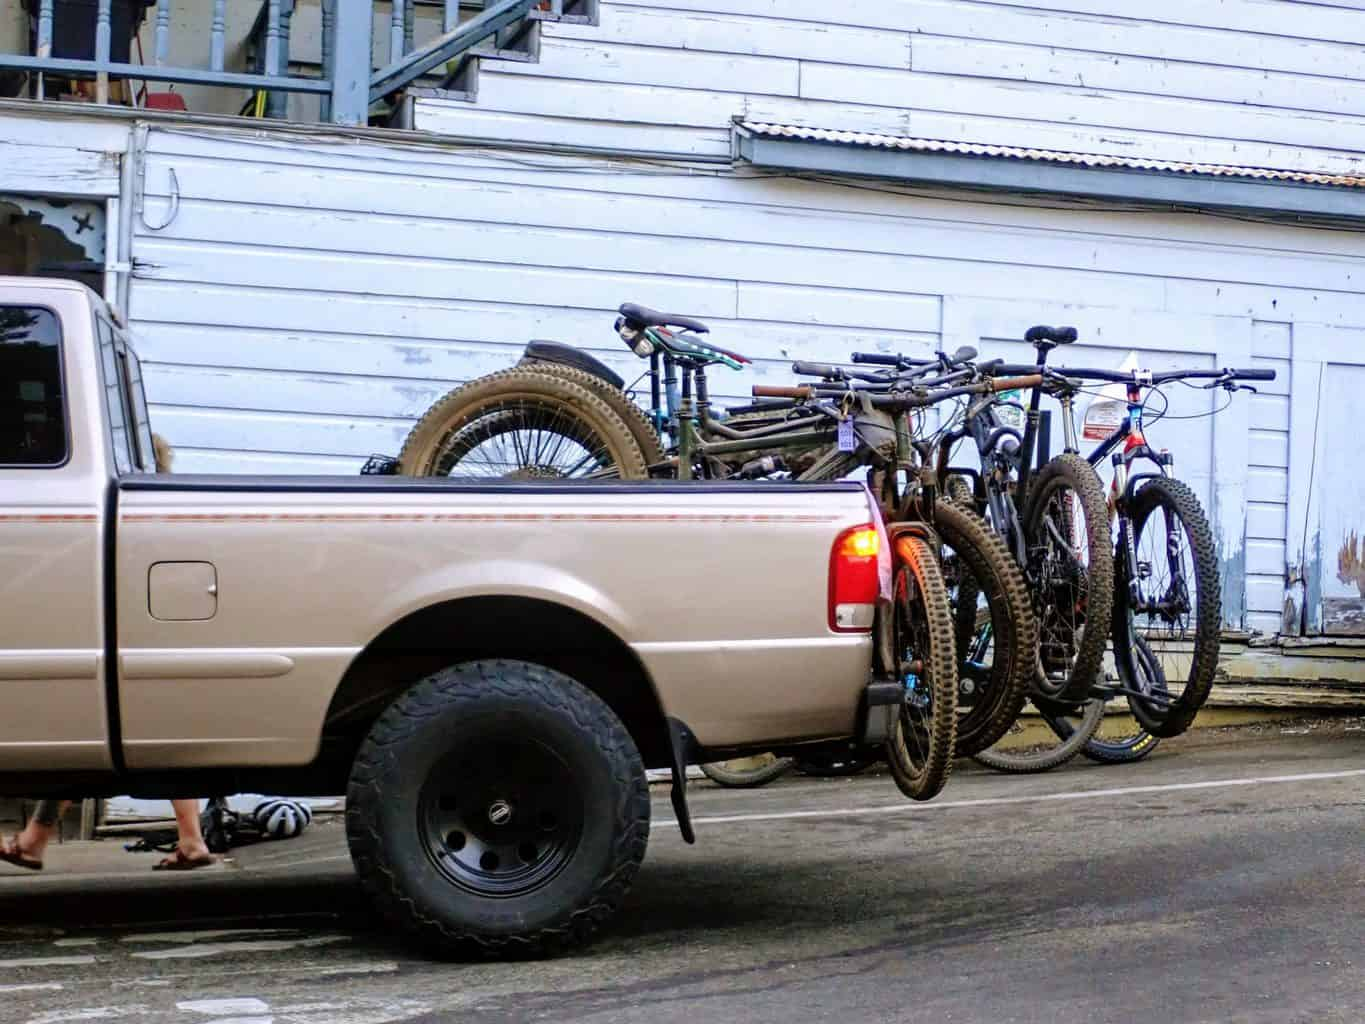 A tan pickup truck holds several mountain bikes during the Downieville Classic Mountain Bike Weekend in California